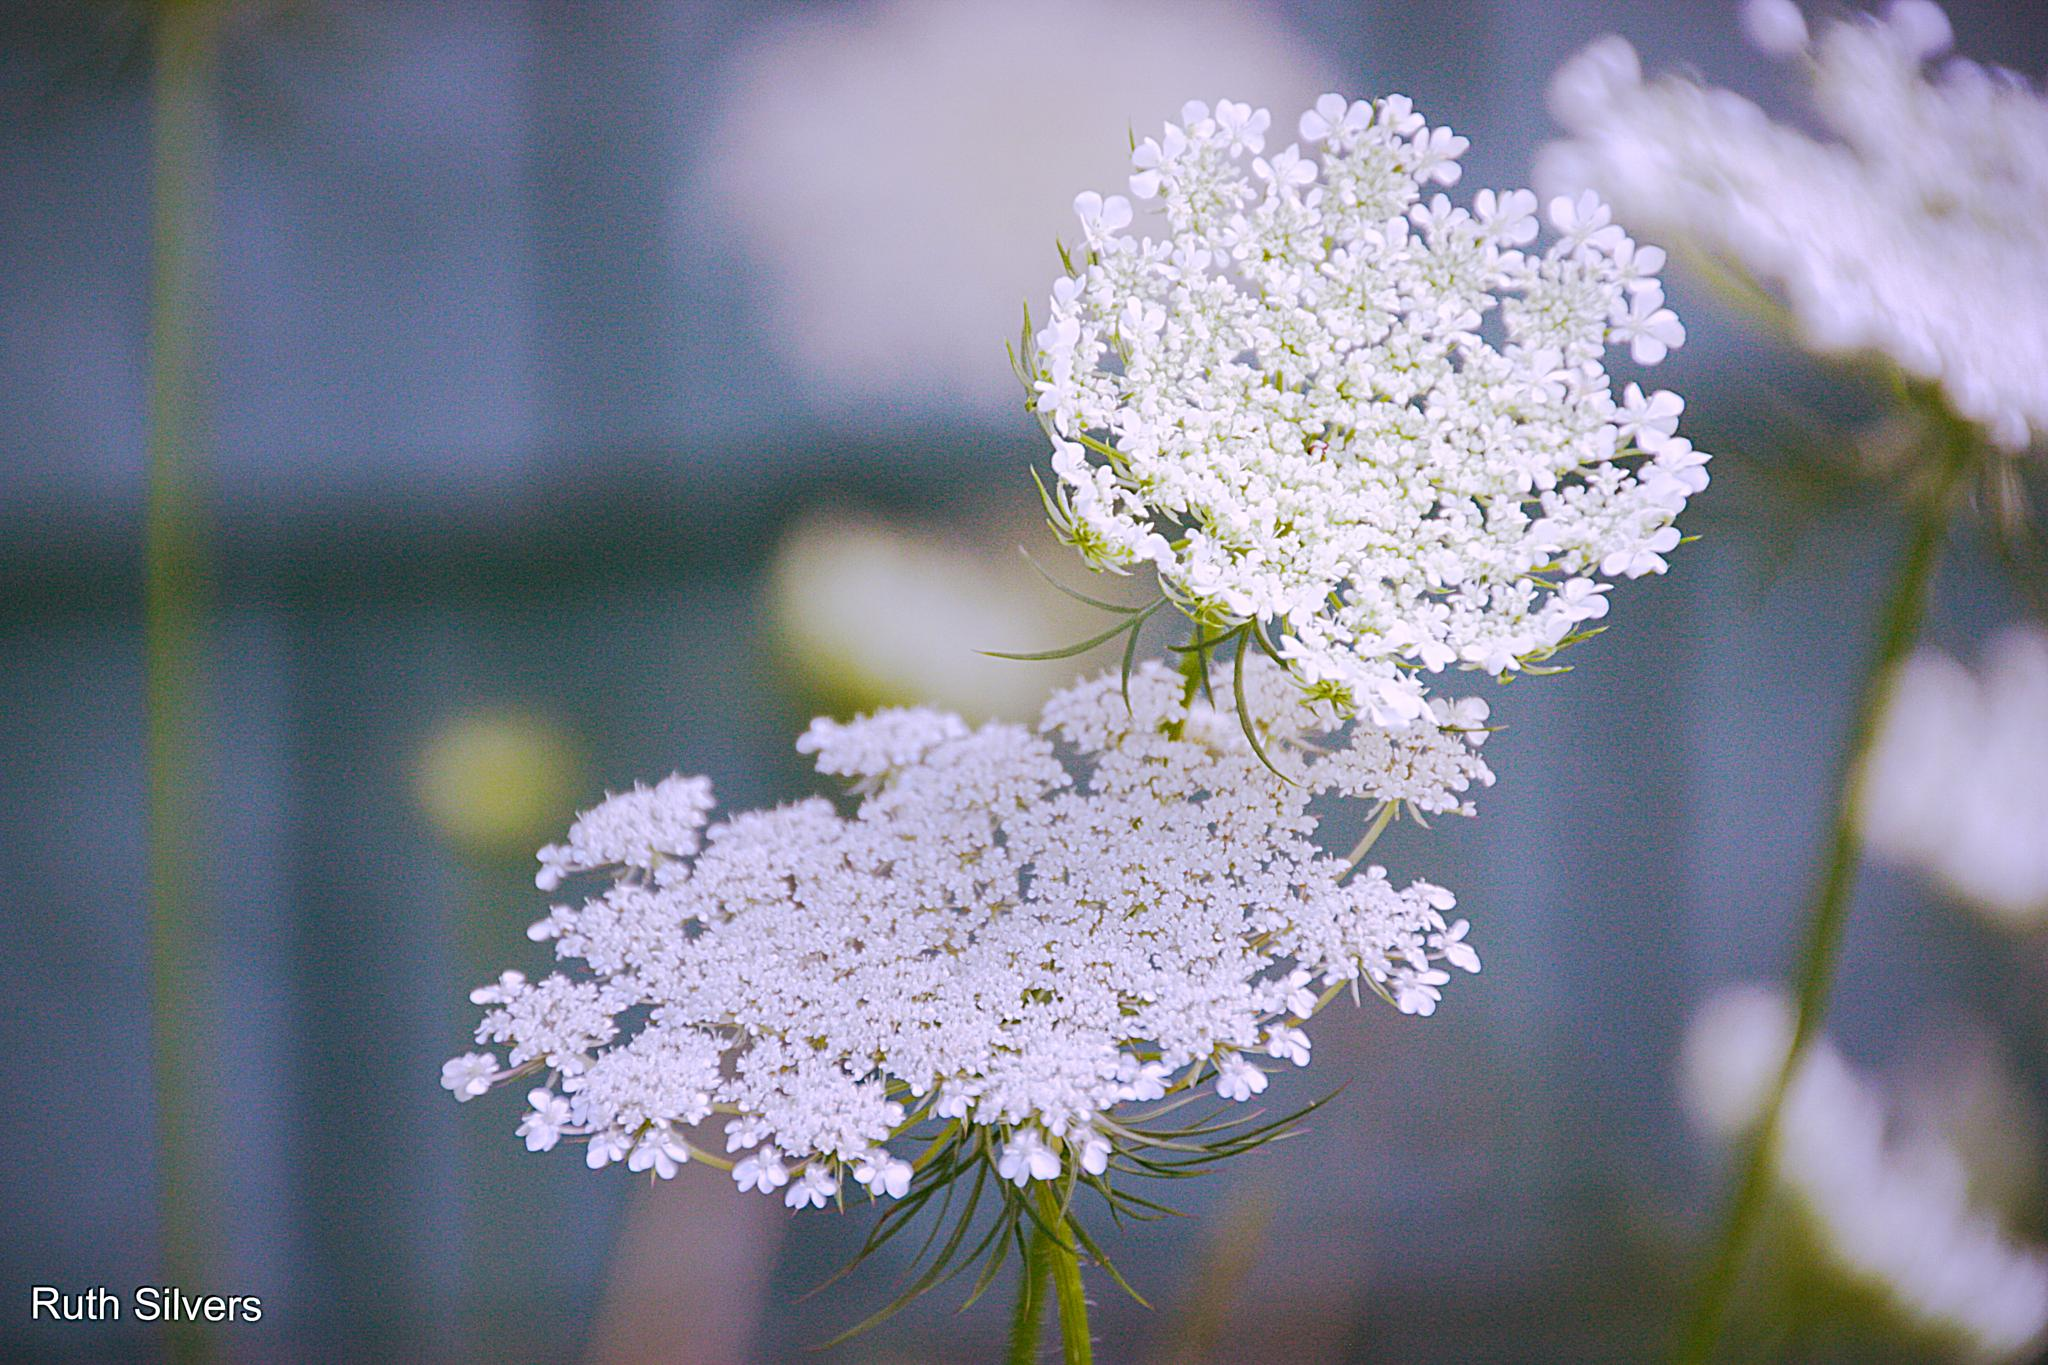 Queen Anne's Lace X 2 by Ruth Silvers